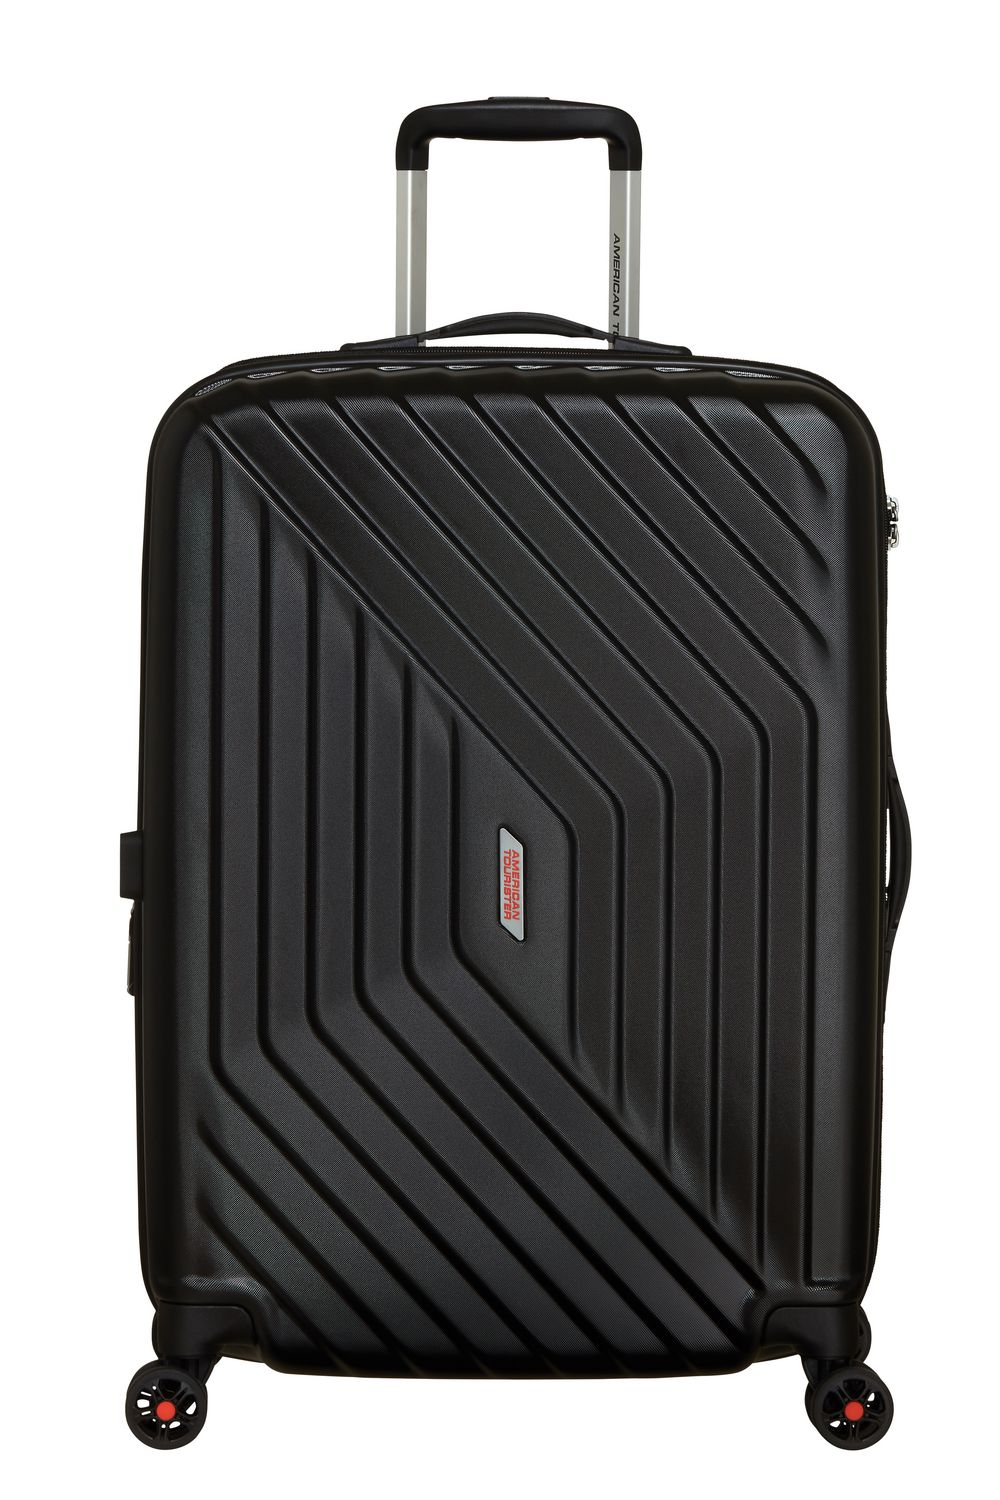 American Tourister Air Force 1 Spinner Luggage Walmart